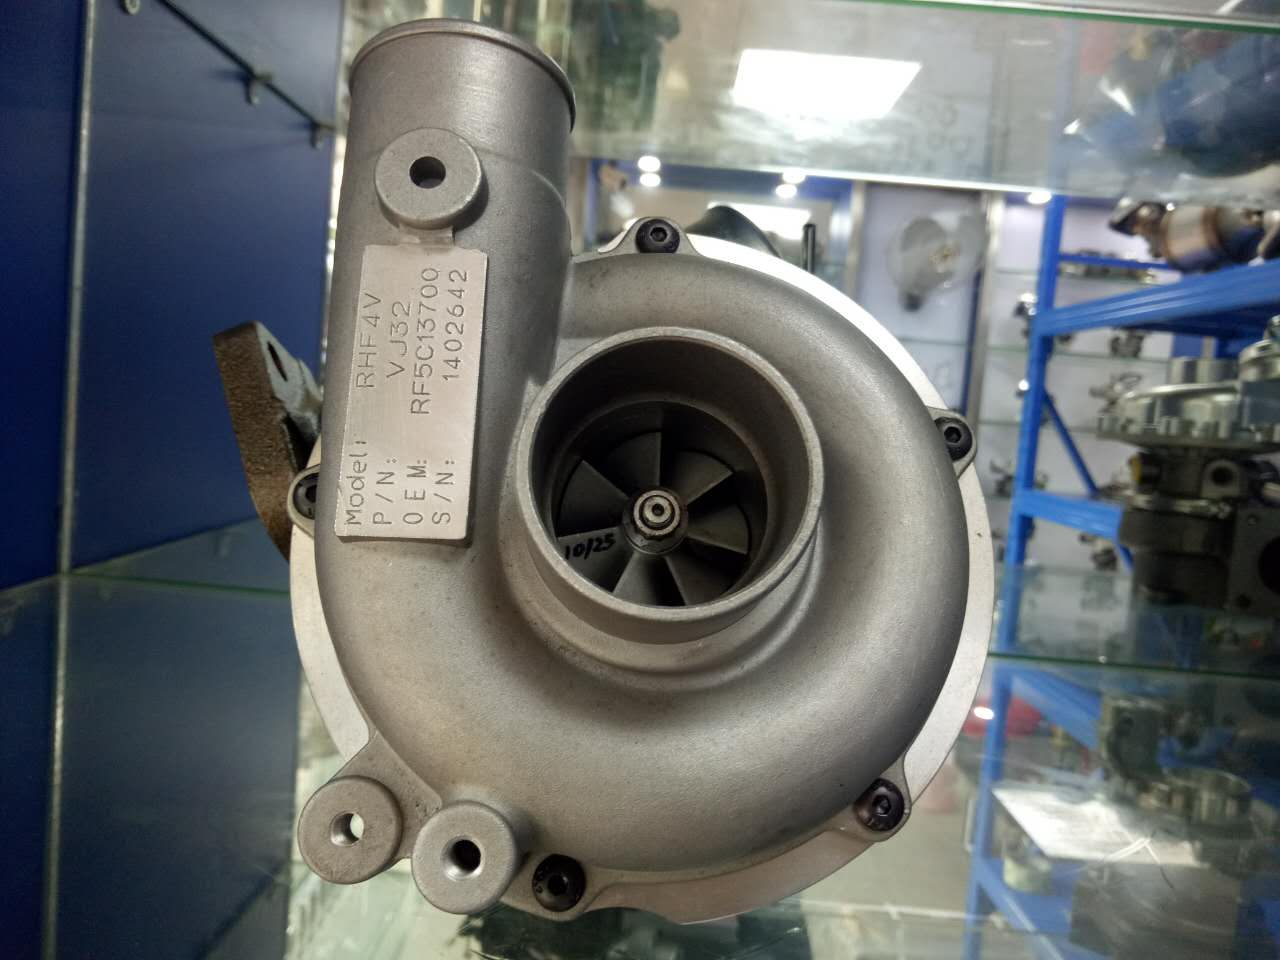 The Turbocharger For Mazda car (RHF4V)